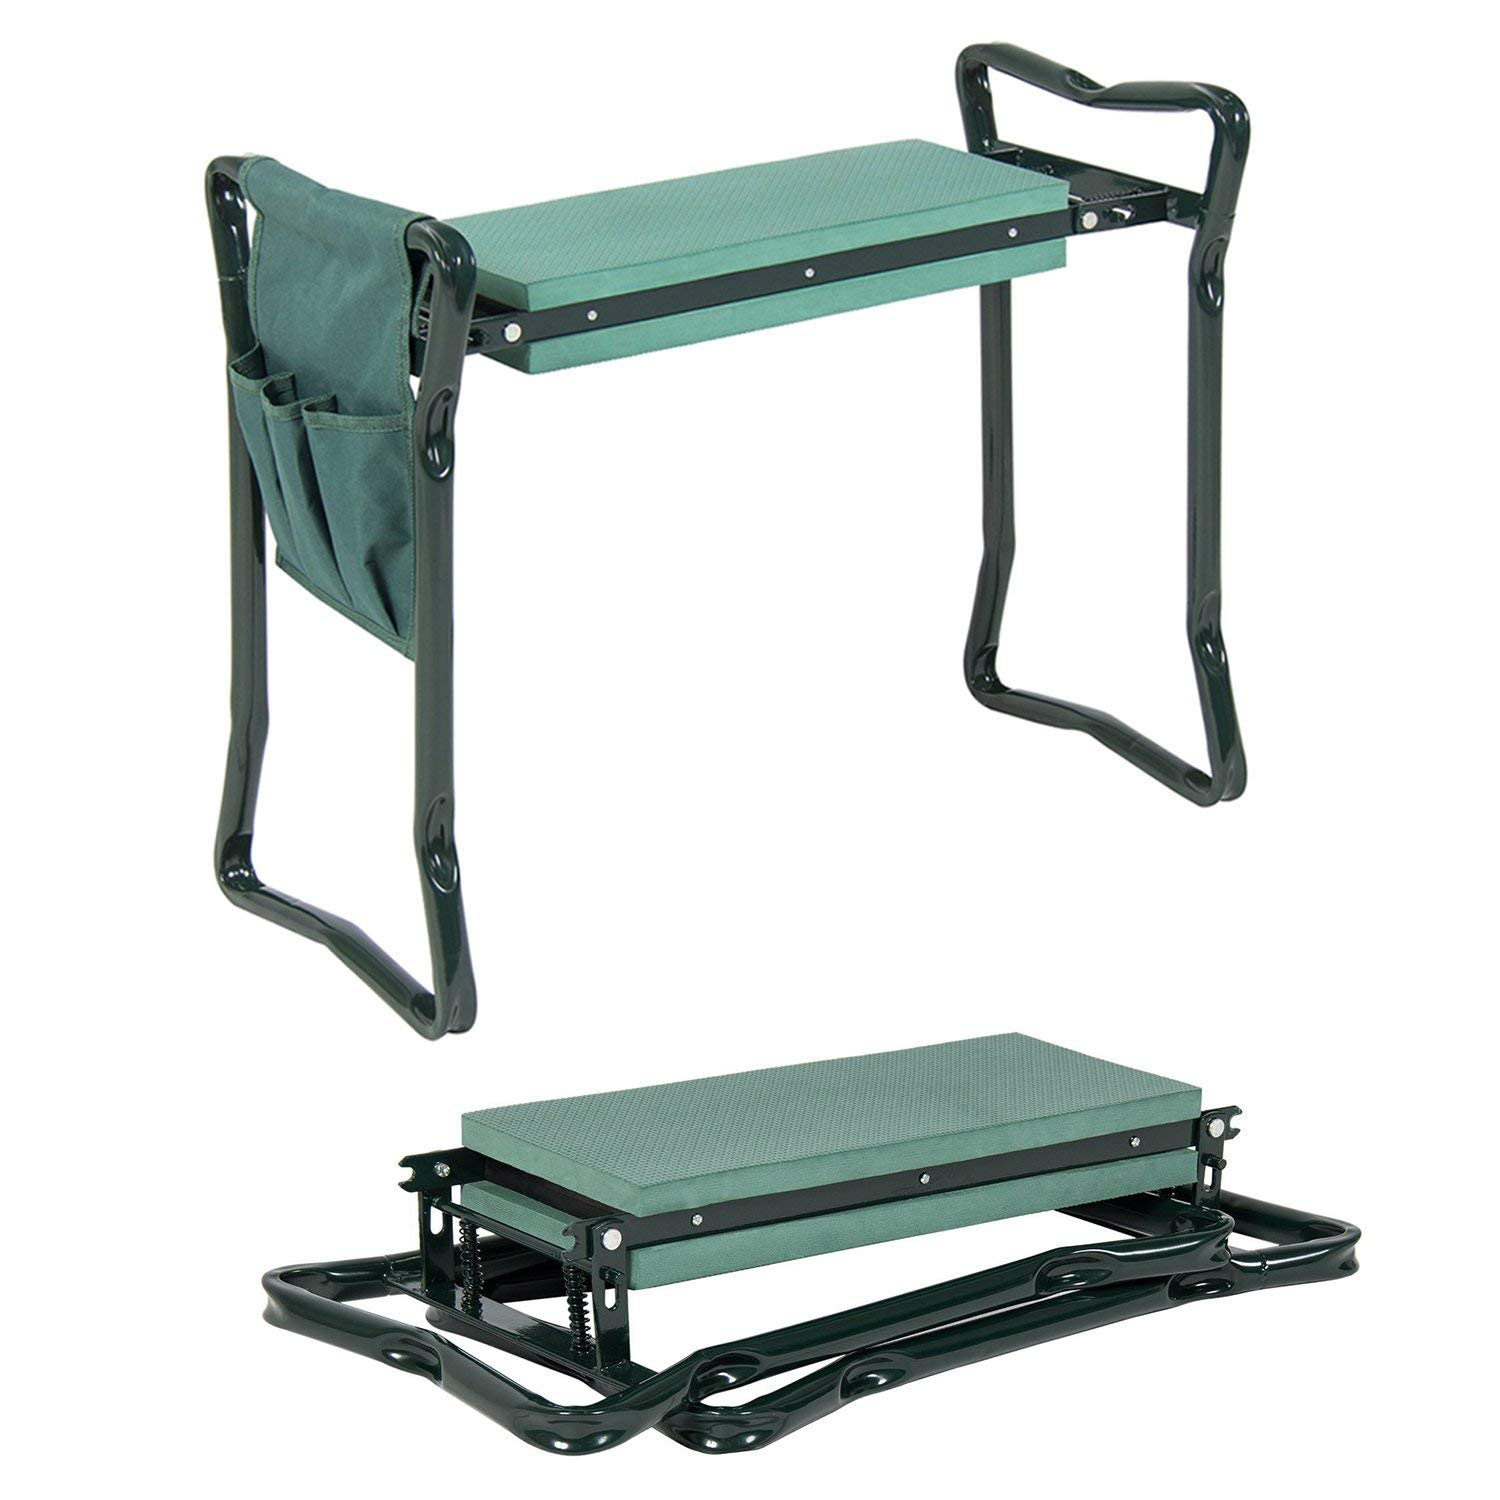 TREE.NB Garden Kneeler and Seat with Tool Pouches by TREE.NB